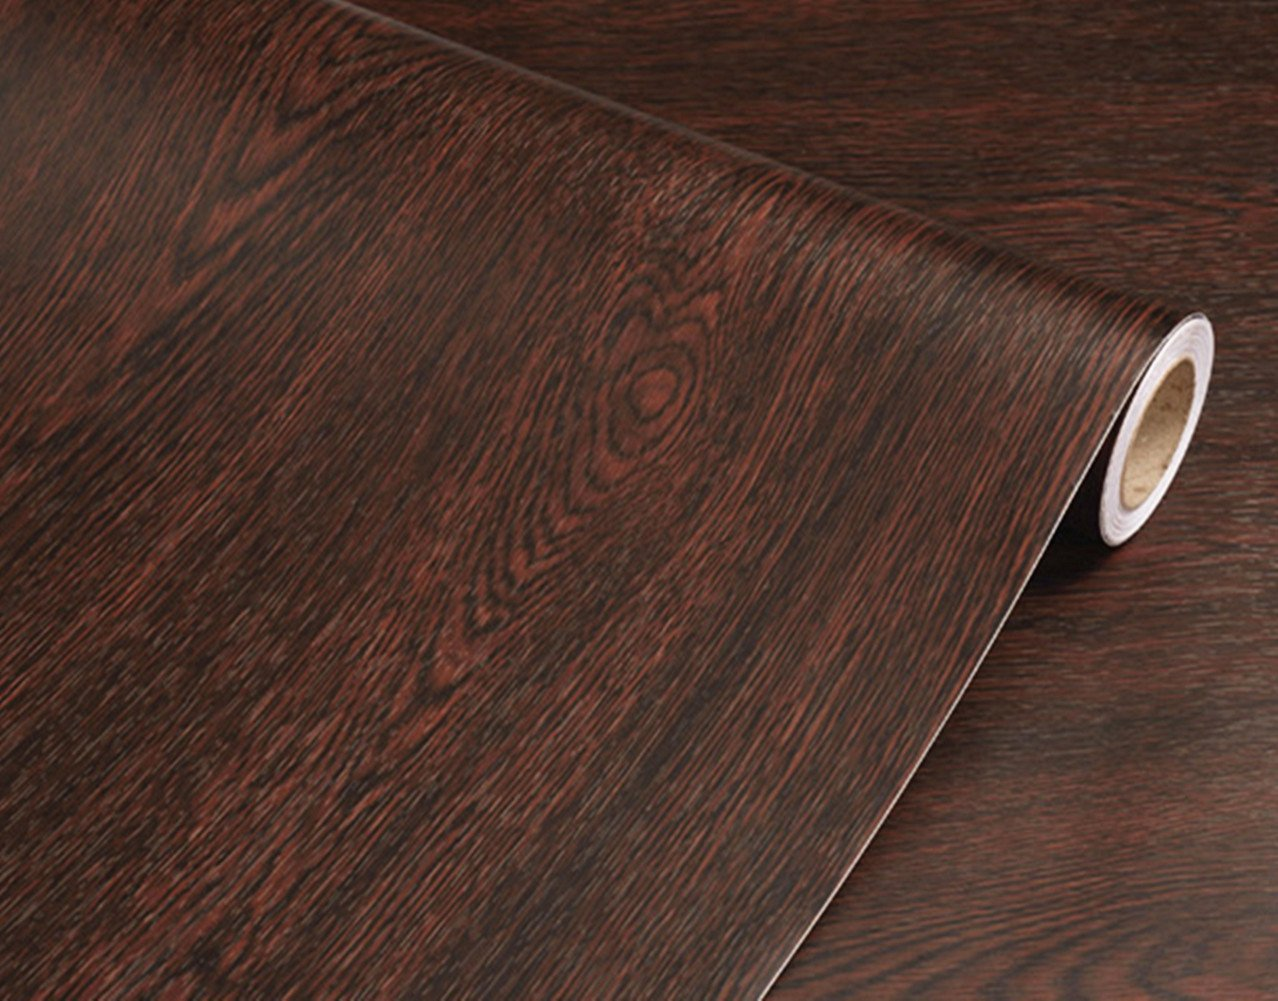 BESTERY Adhesive Wood Grain Contact Paper Peel and Stick Furniture Stickers Wallpaper Cabinets Wardrobe Contact Paper,15.8inch by 98in (Dark Brown)